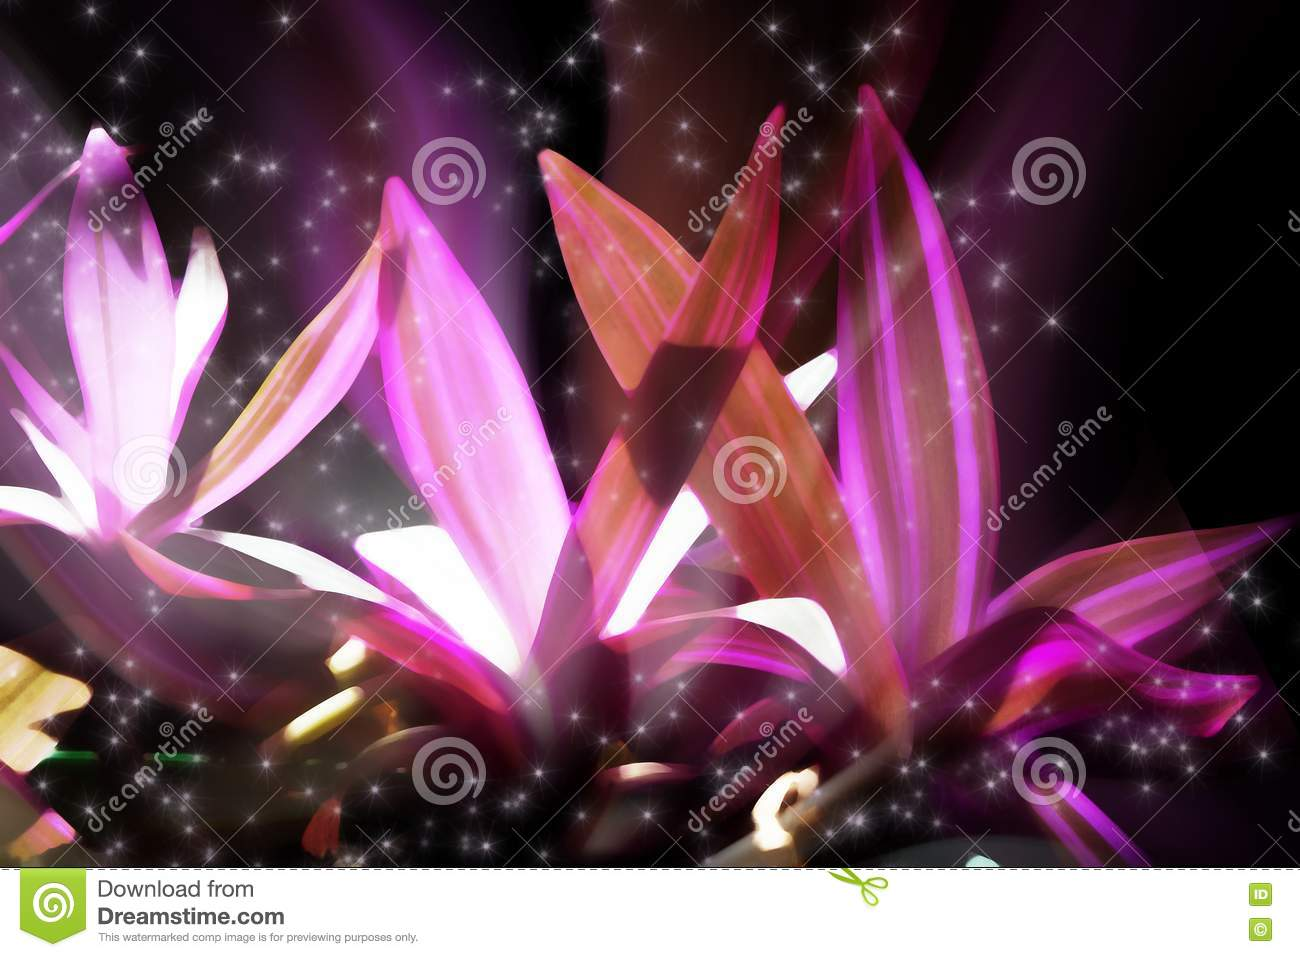 elements of glowing flowers - photo #46